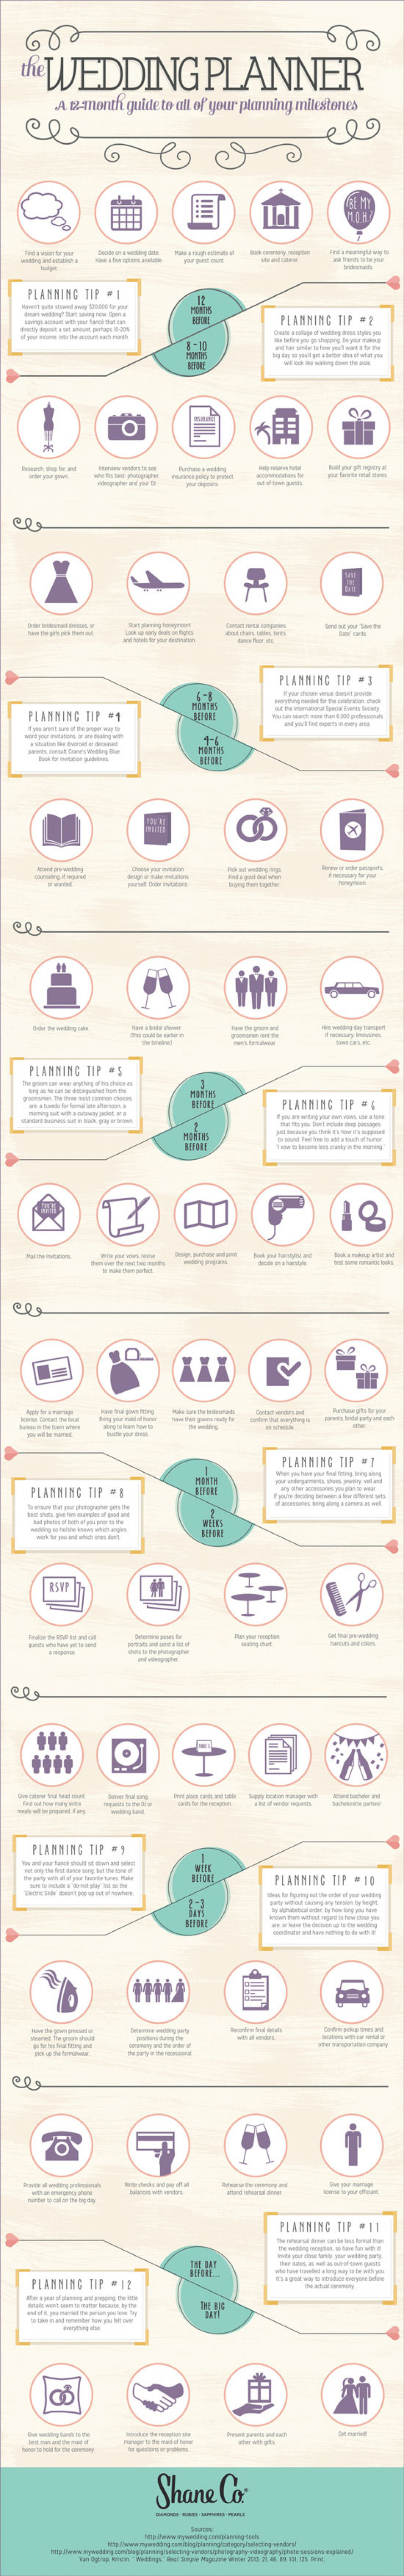 The 12 Month Guide to the Perfect Wedding